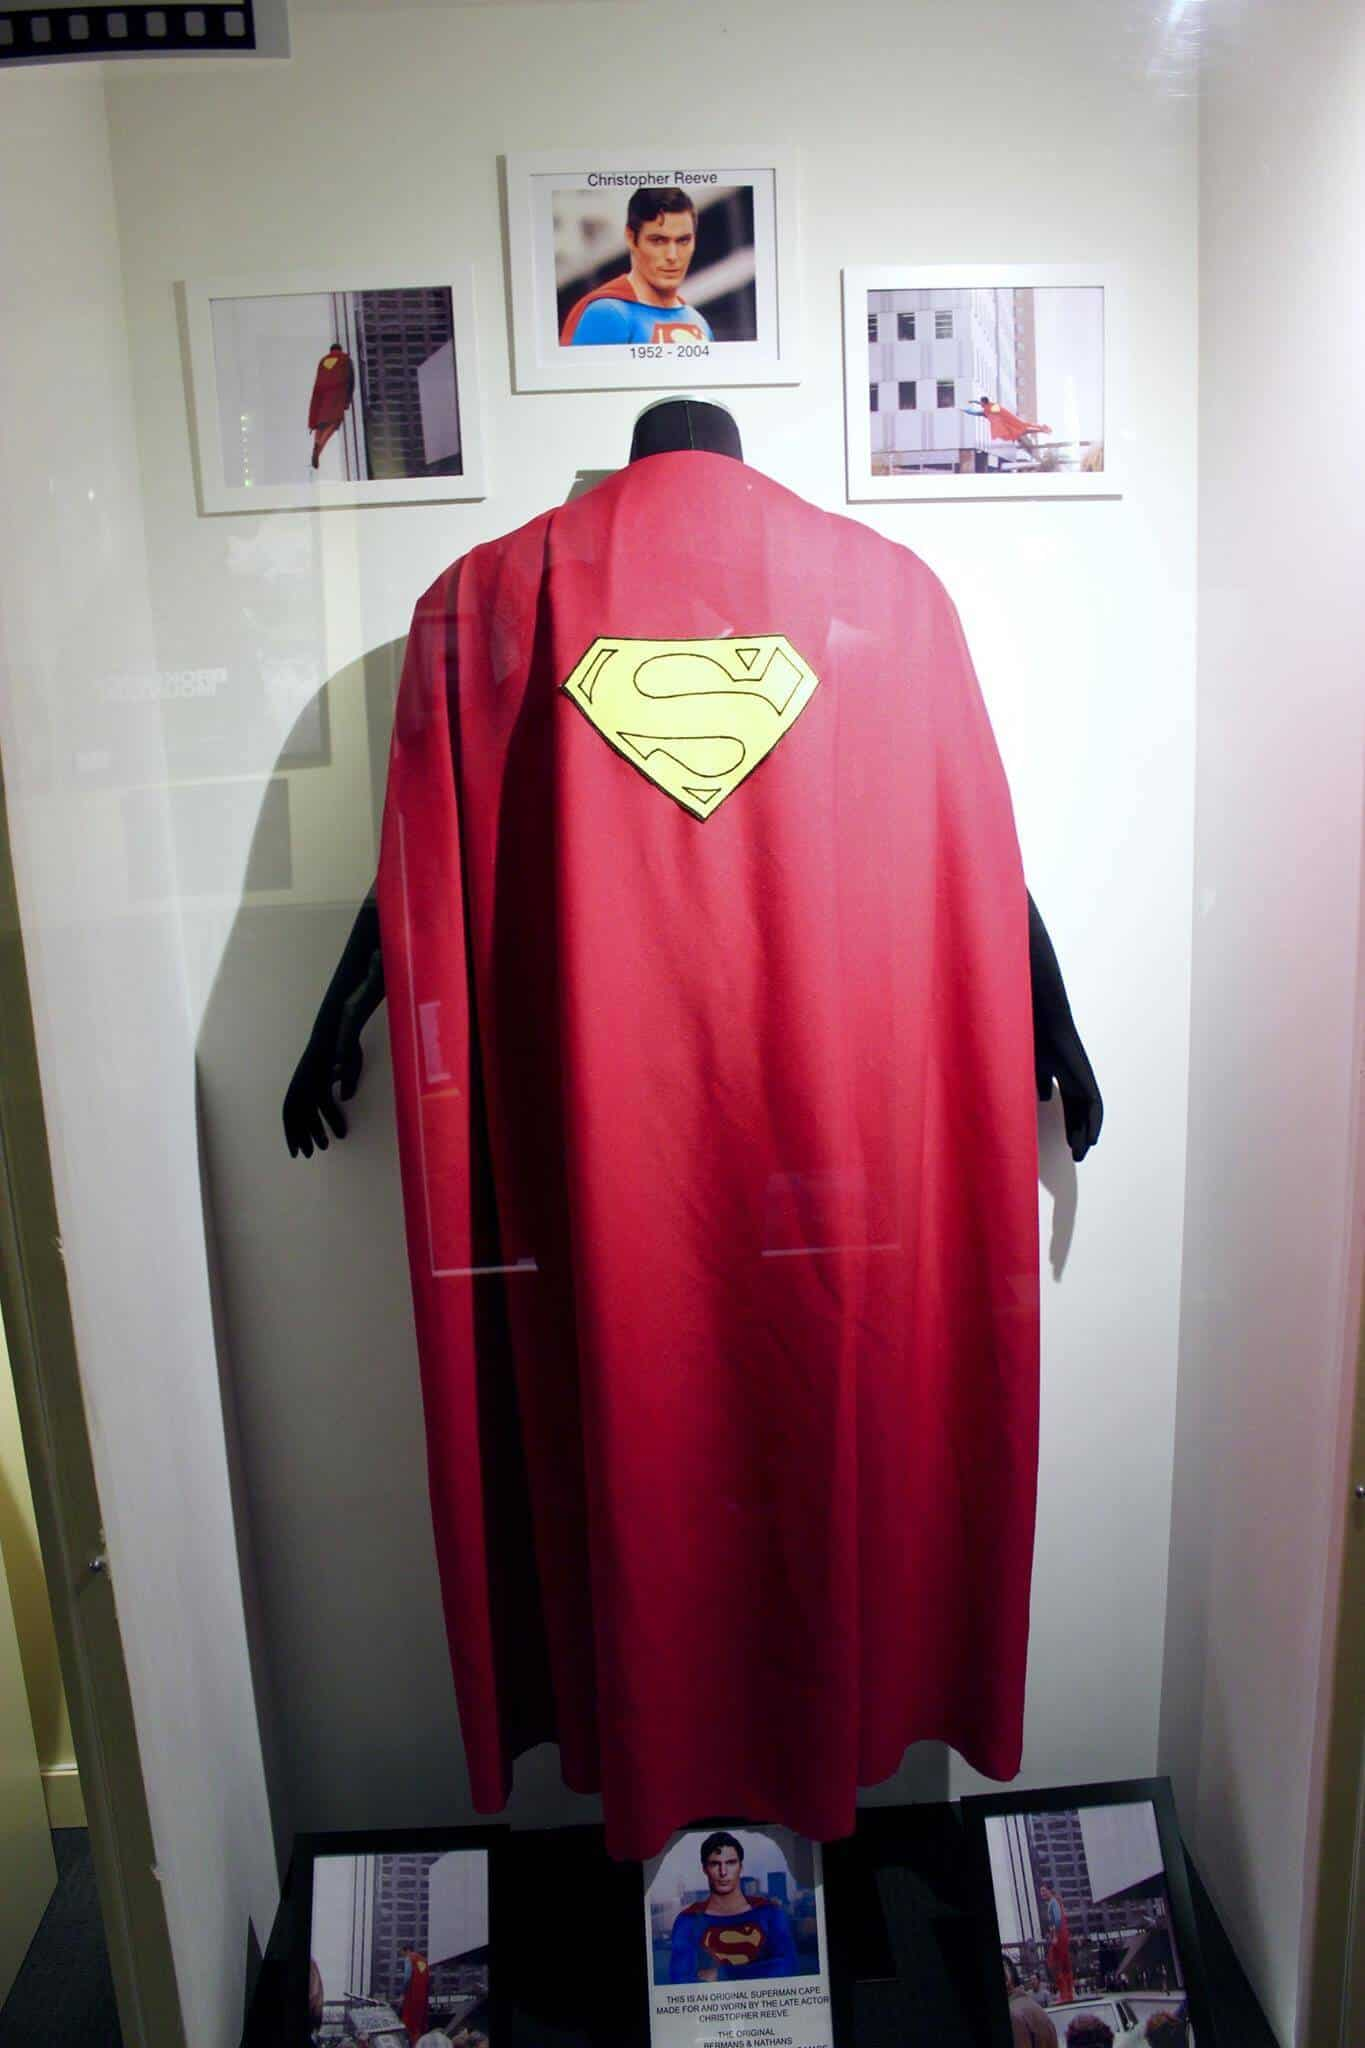 Inside a large glass case is the superman cape worn by Christopher Reeves in the superman movies.